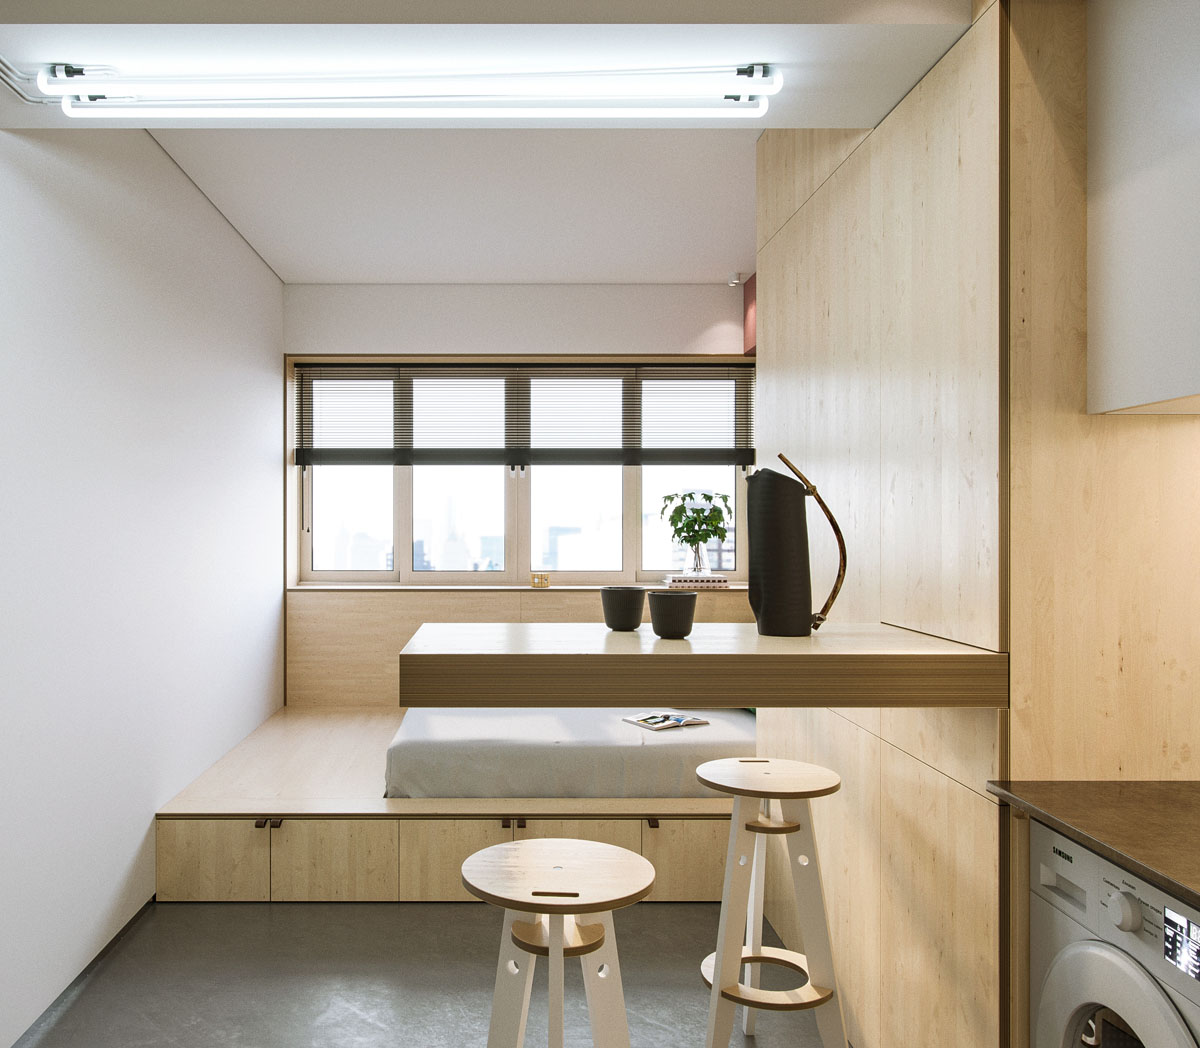 Studio Apartment: Super Compact Spaces: A Minimalist Studio Apartment Under